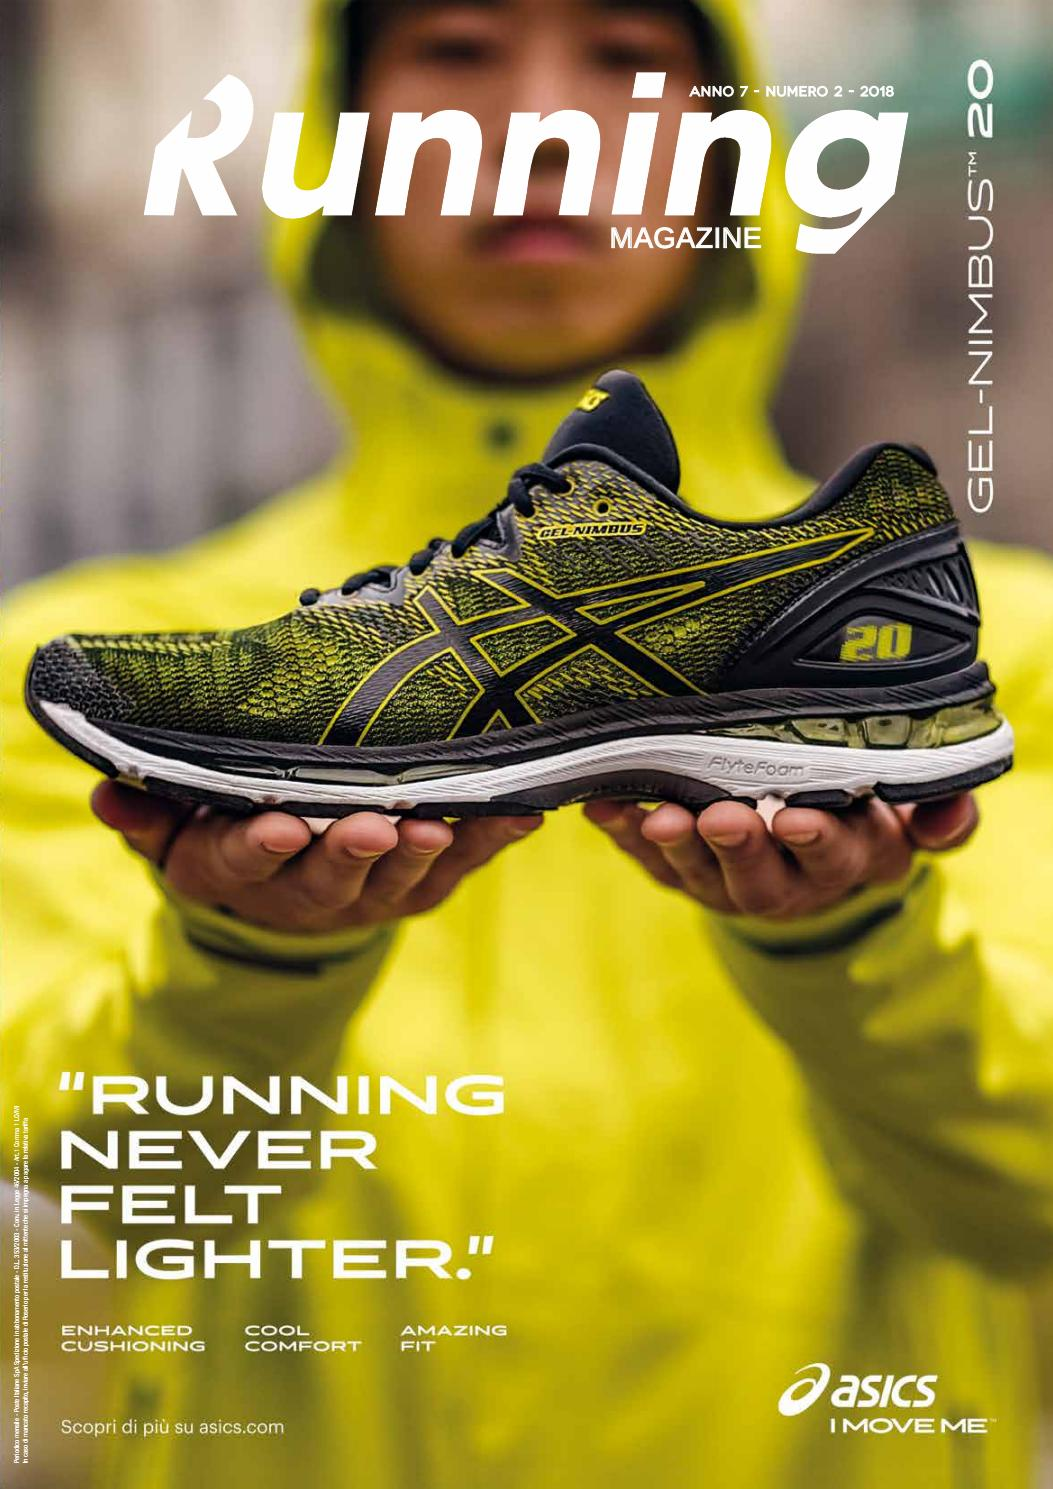 Running Mag 2 2018 by Sport Press issuu